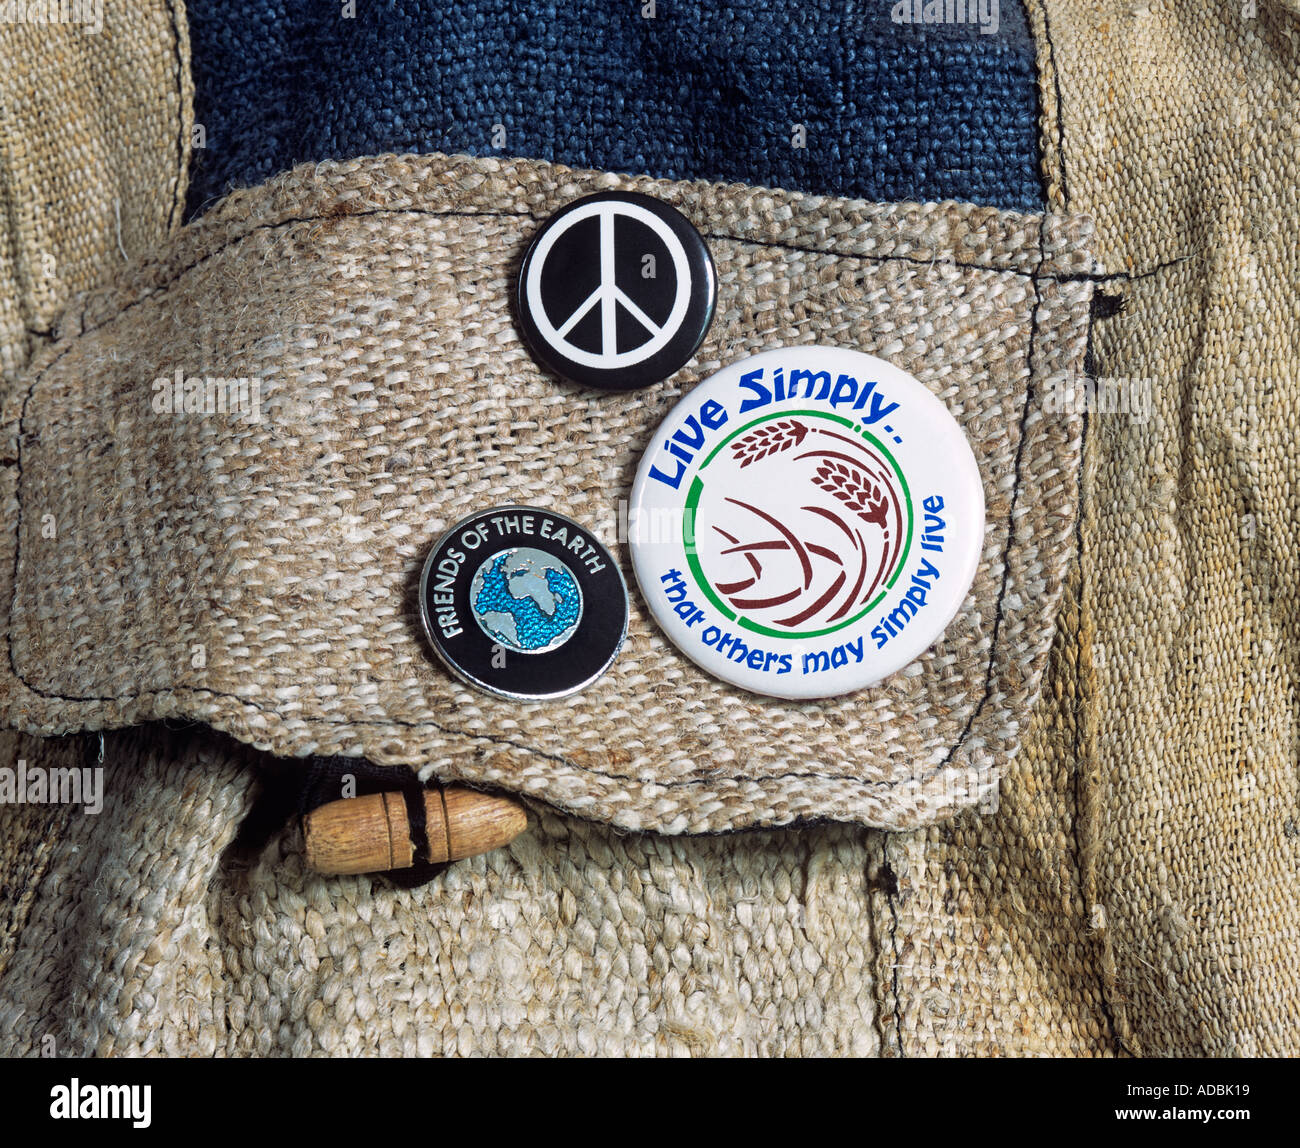 'Live Simply.. that others may simply live' and other badges, on a shoulder bag made from hemp. - Stock Image